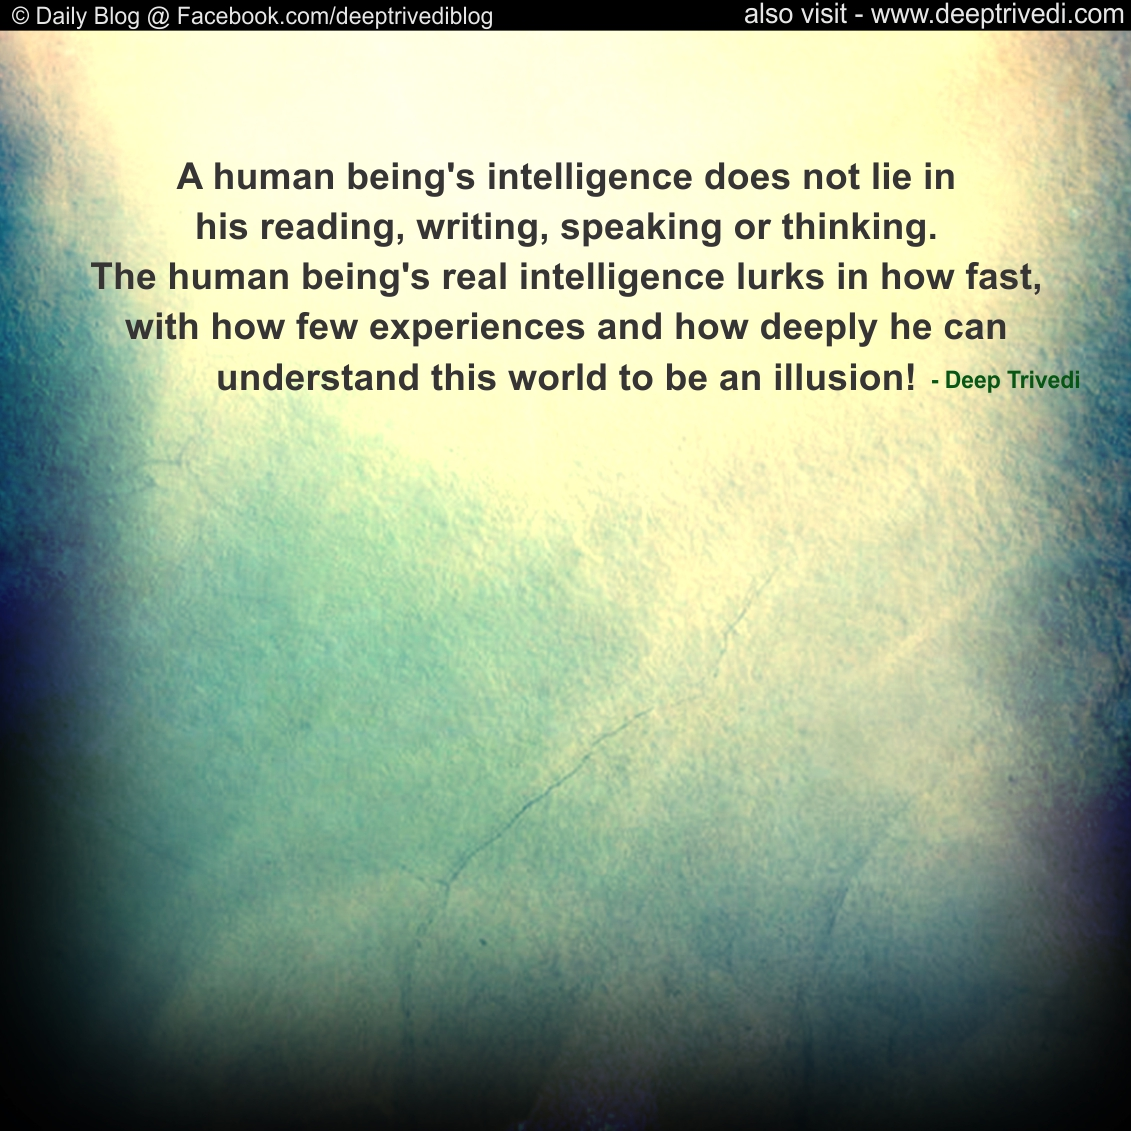 A human being's intelligence does not lie in his reading, writing, speaking or thinking